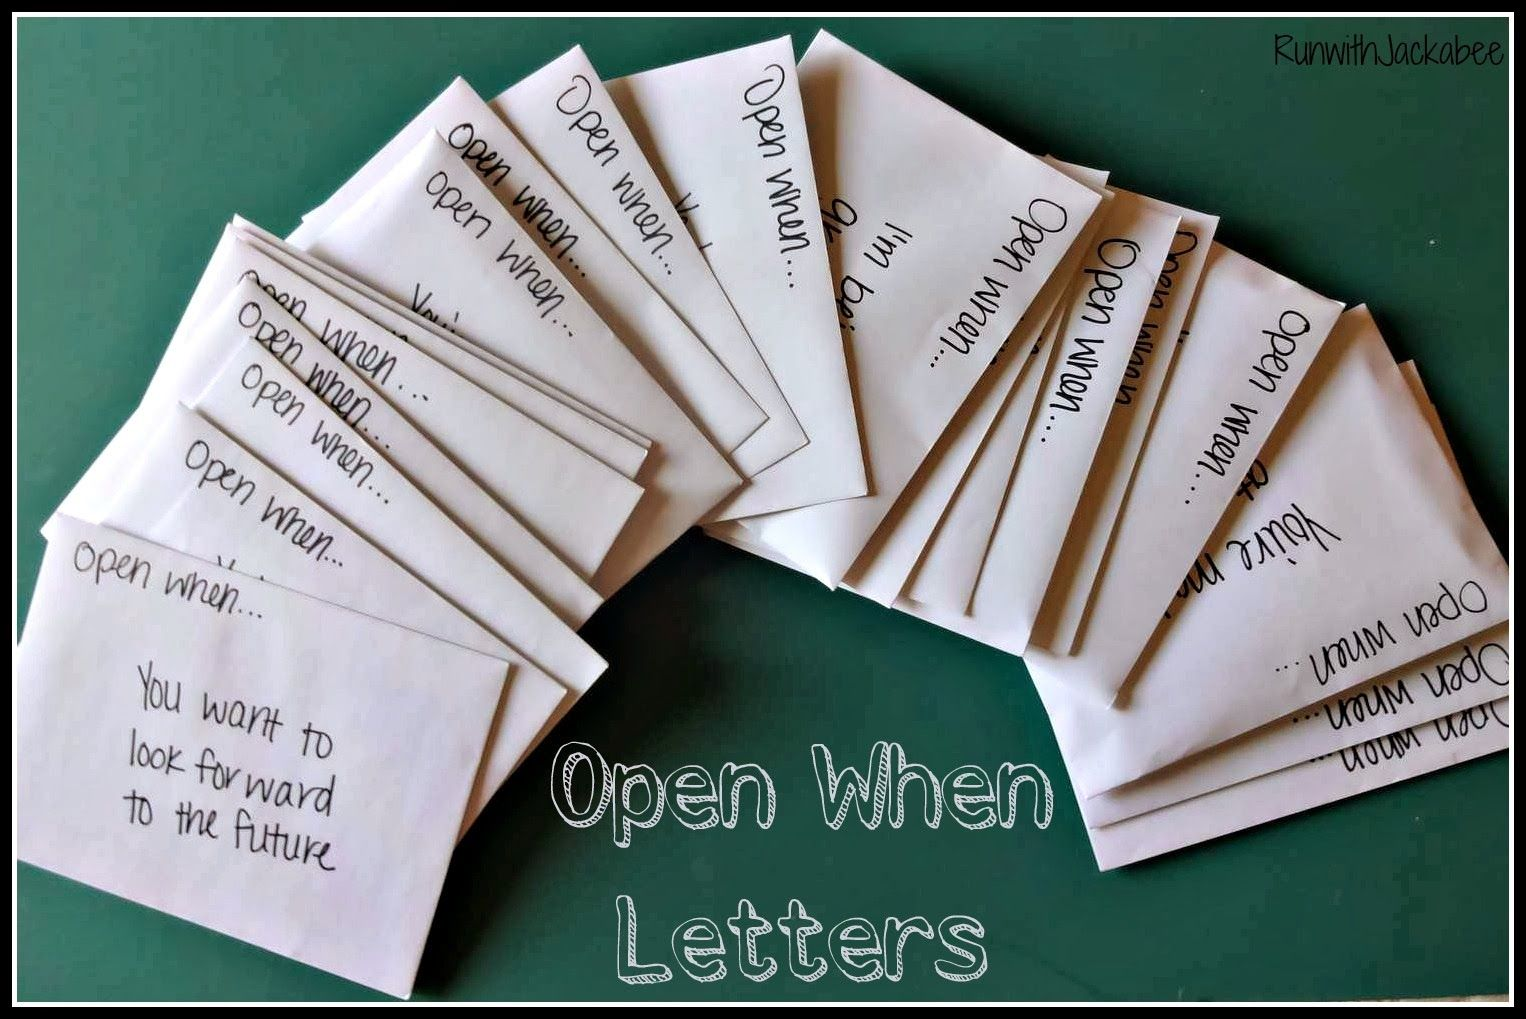 This Is A Really Great Example Of Open When Letters And What To